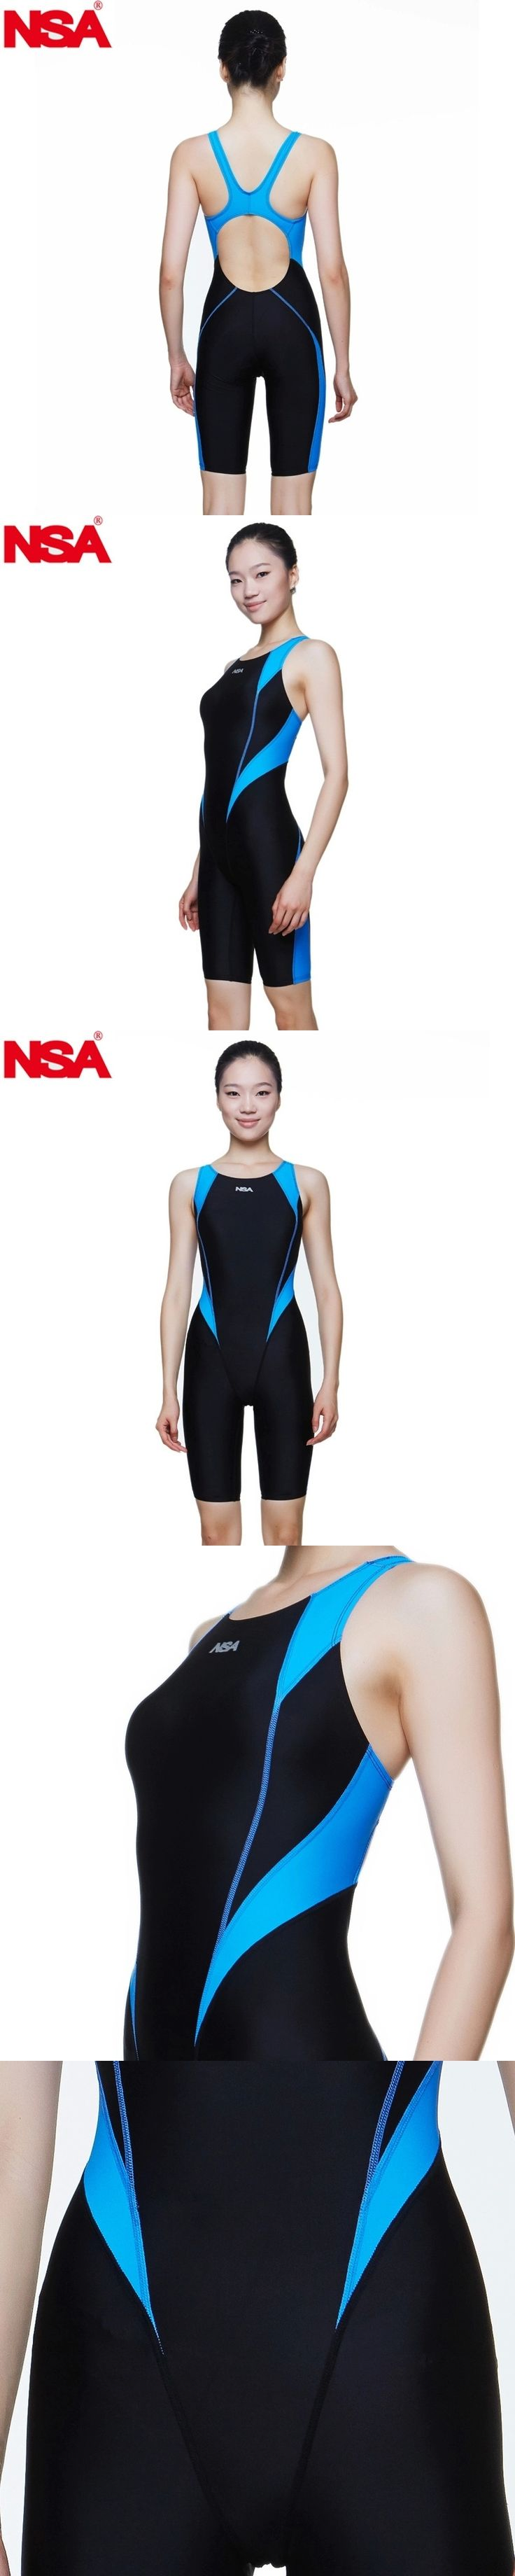 NSA Women's Swimsuits One Piece Swim Suit Swimming Suit for Women Swimsuit Competitive Racing Bathing Suit Girls